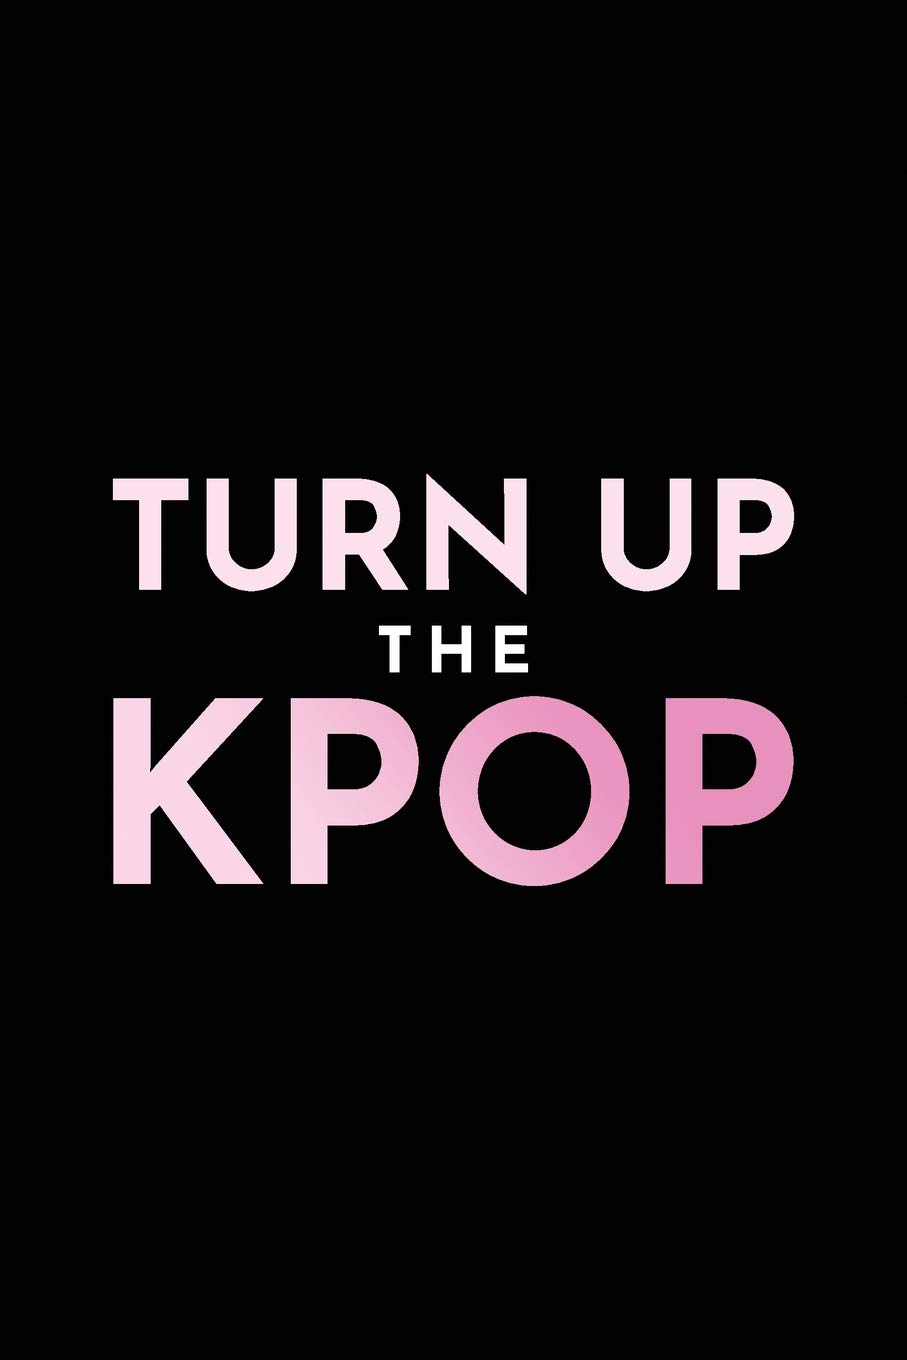 Turn Up The Kpop: 120 Page Blank Lined Journal: Amazon.es ...